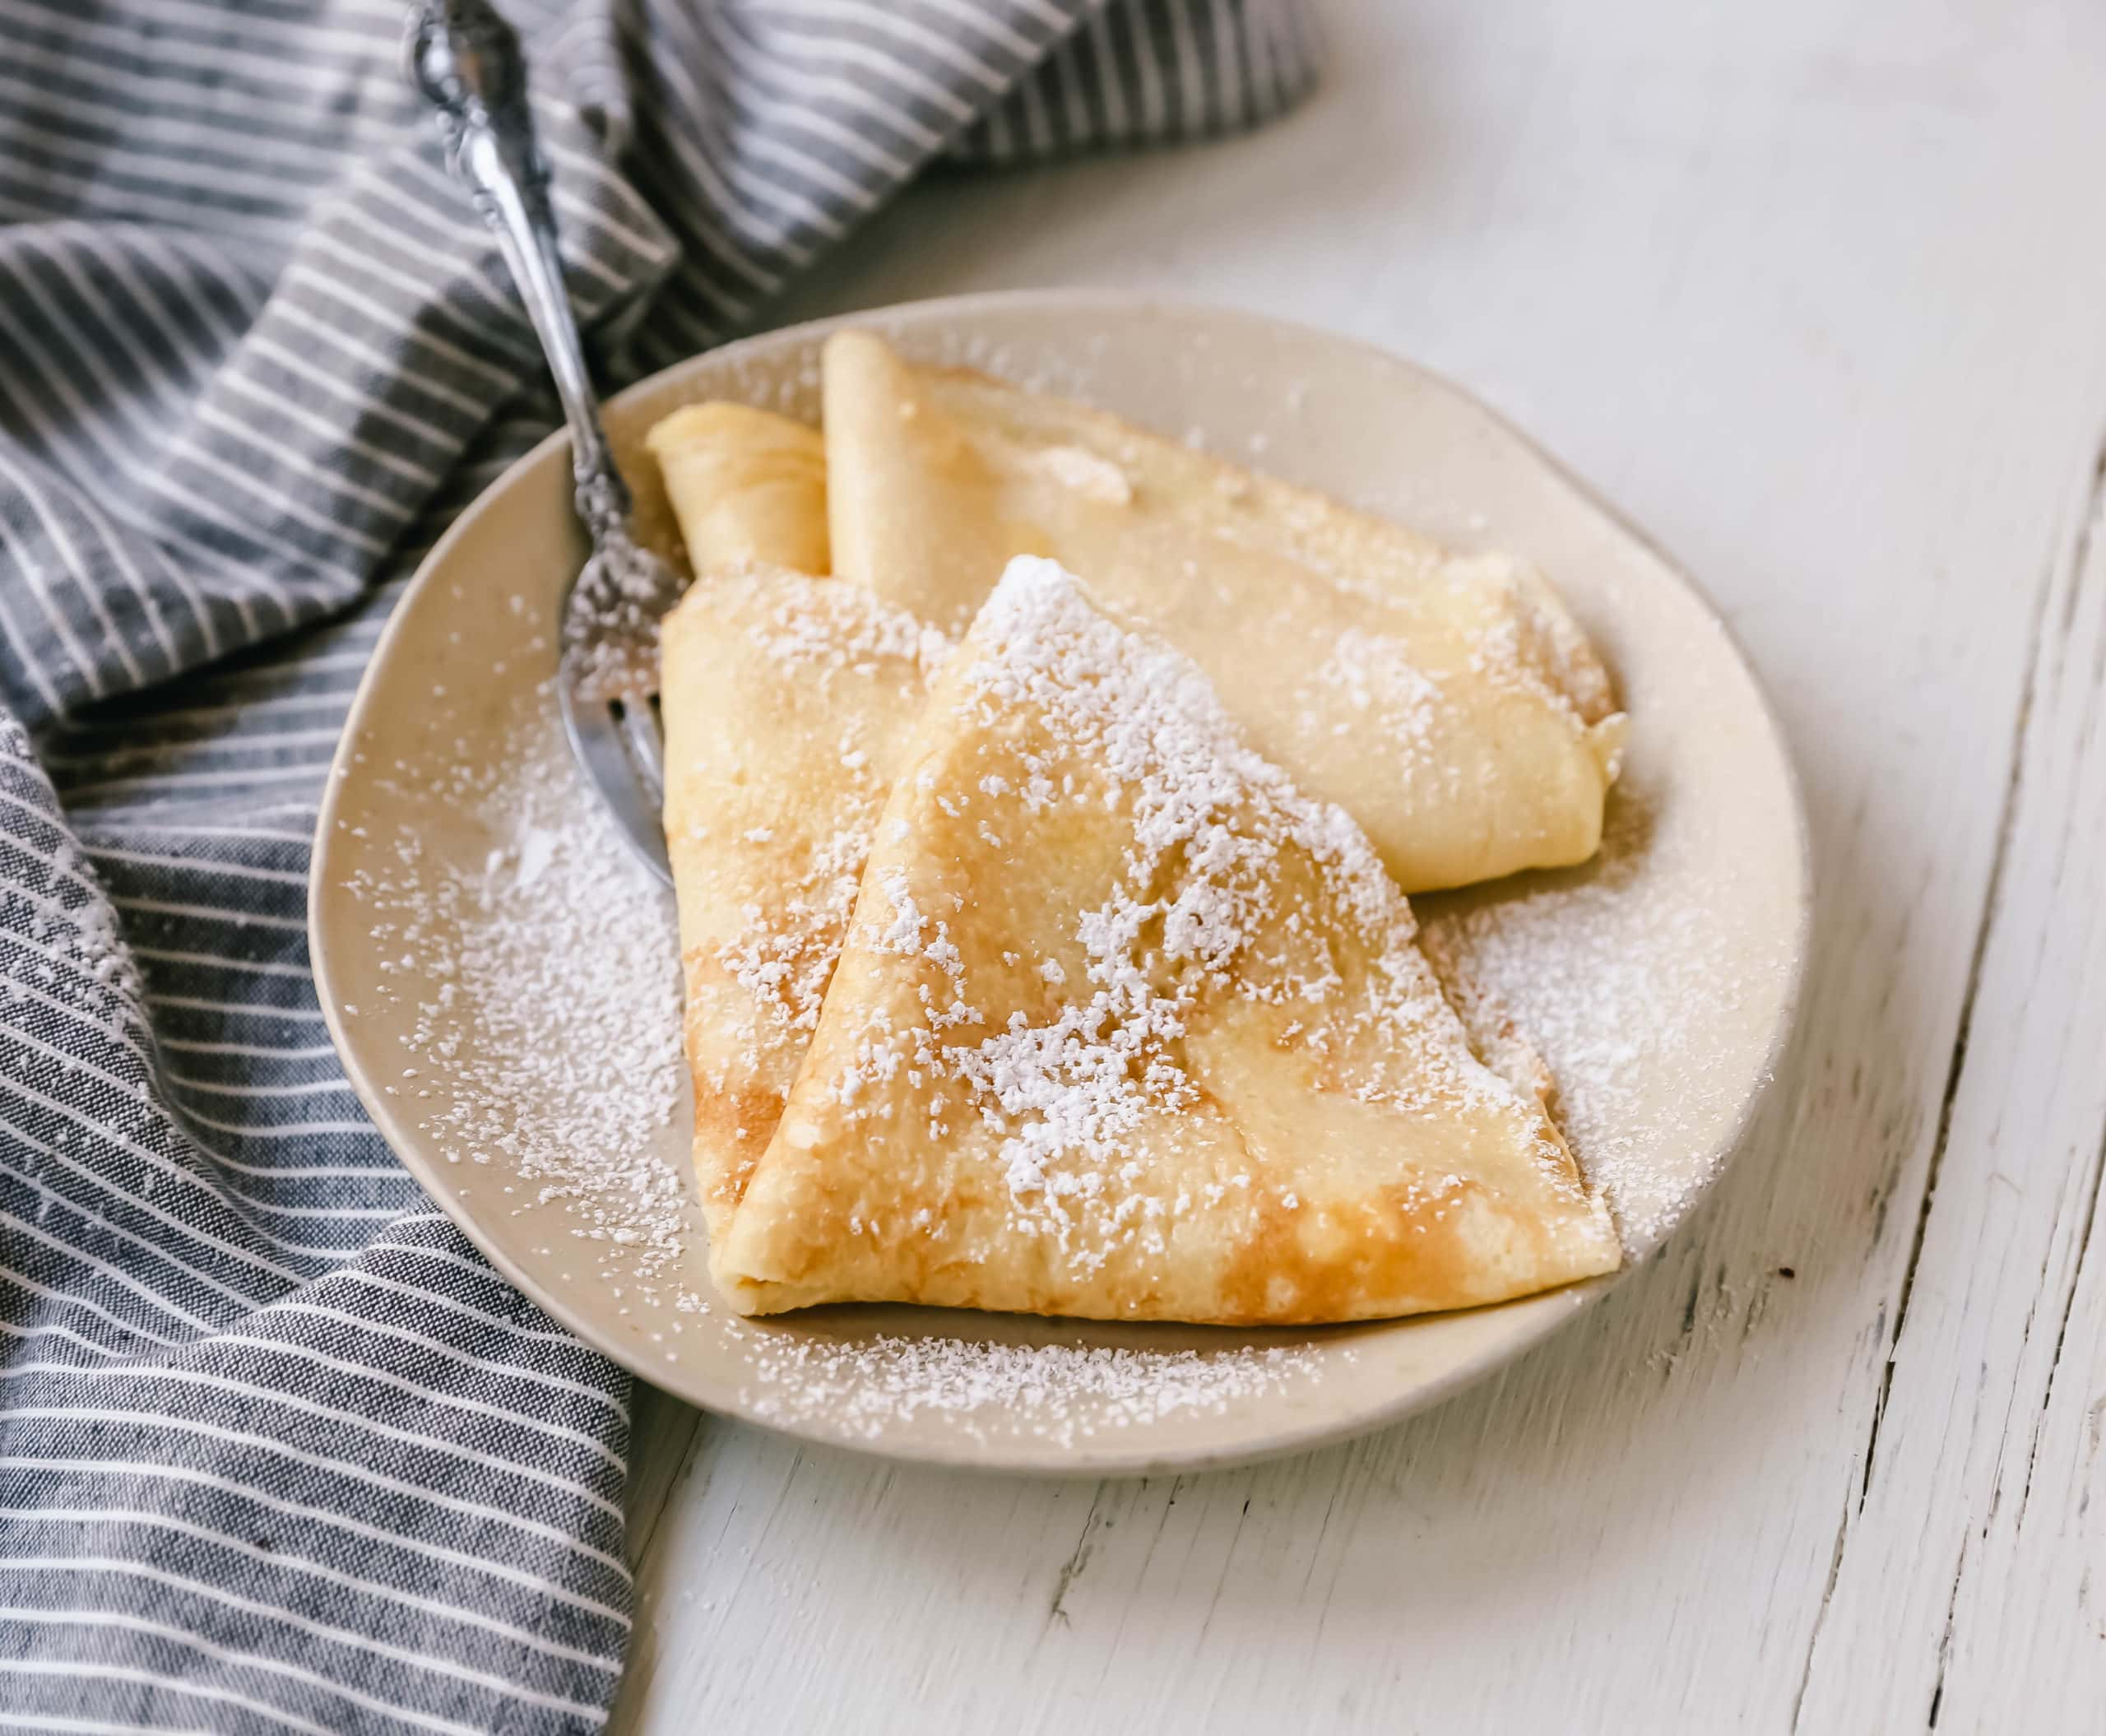 The Best Crepes Recipe. An easy homemade crepe recipe made with simple ingredients -- milk, flour, eggs, sugar, water, and butter. Simple 6-ingredient crepe recipe! #crepes #crepe #breakfast